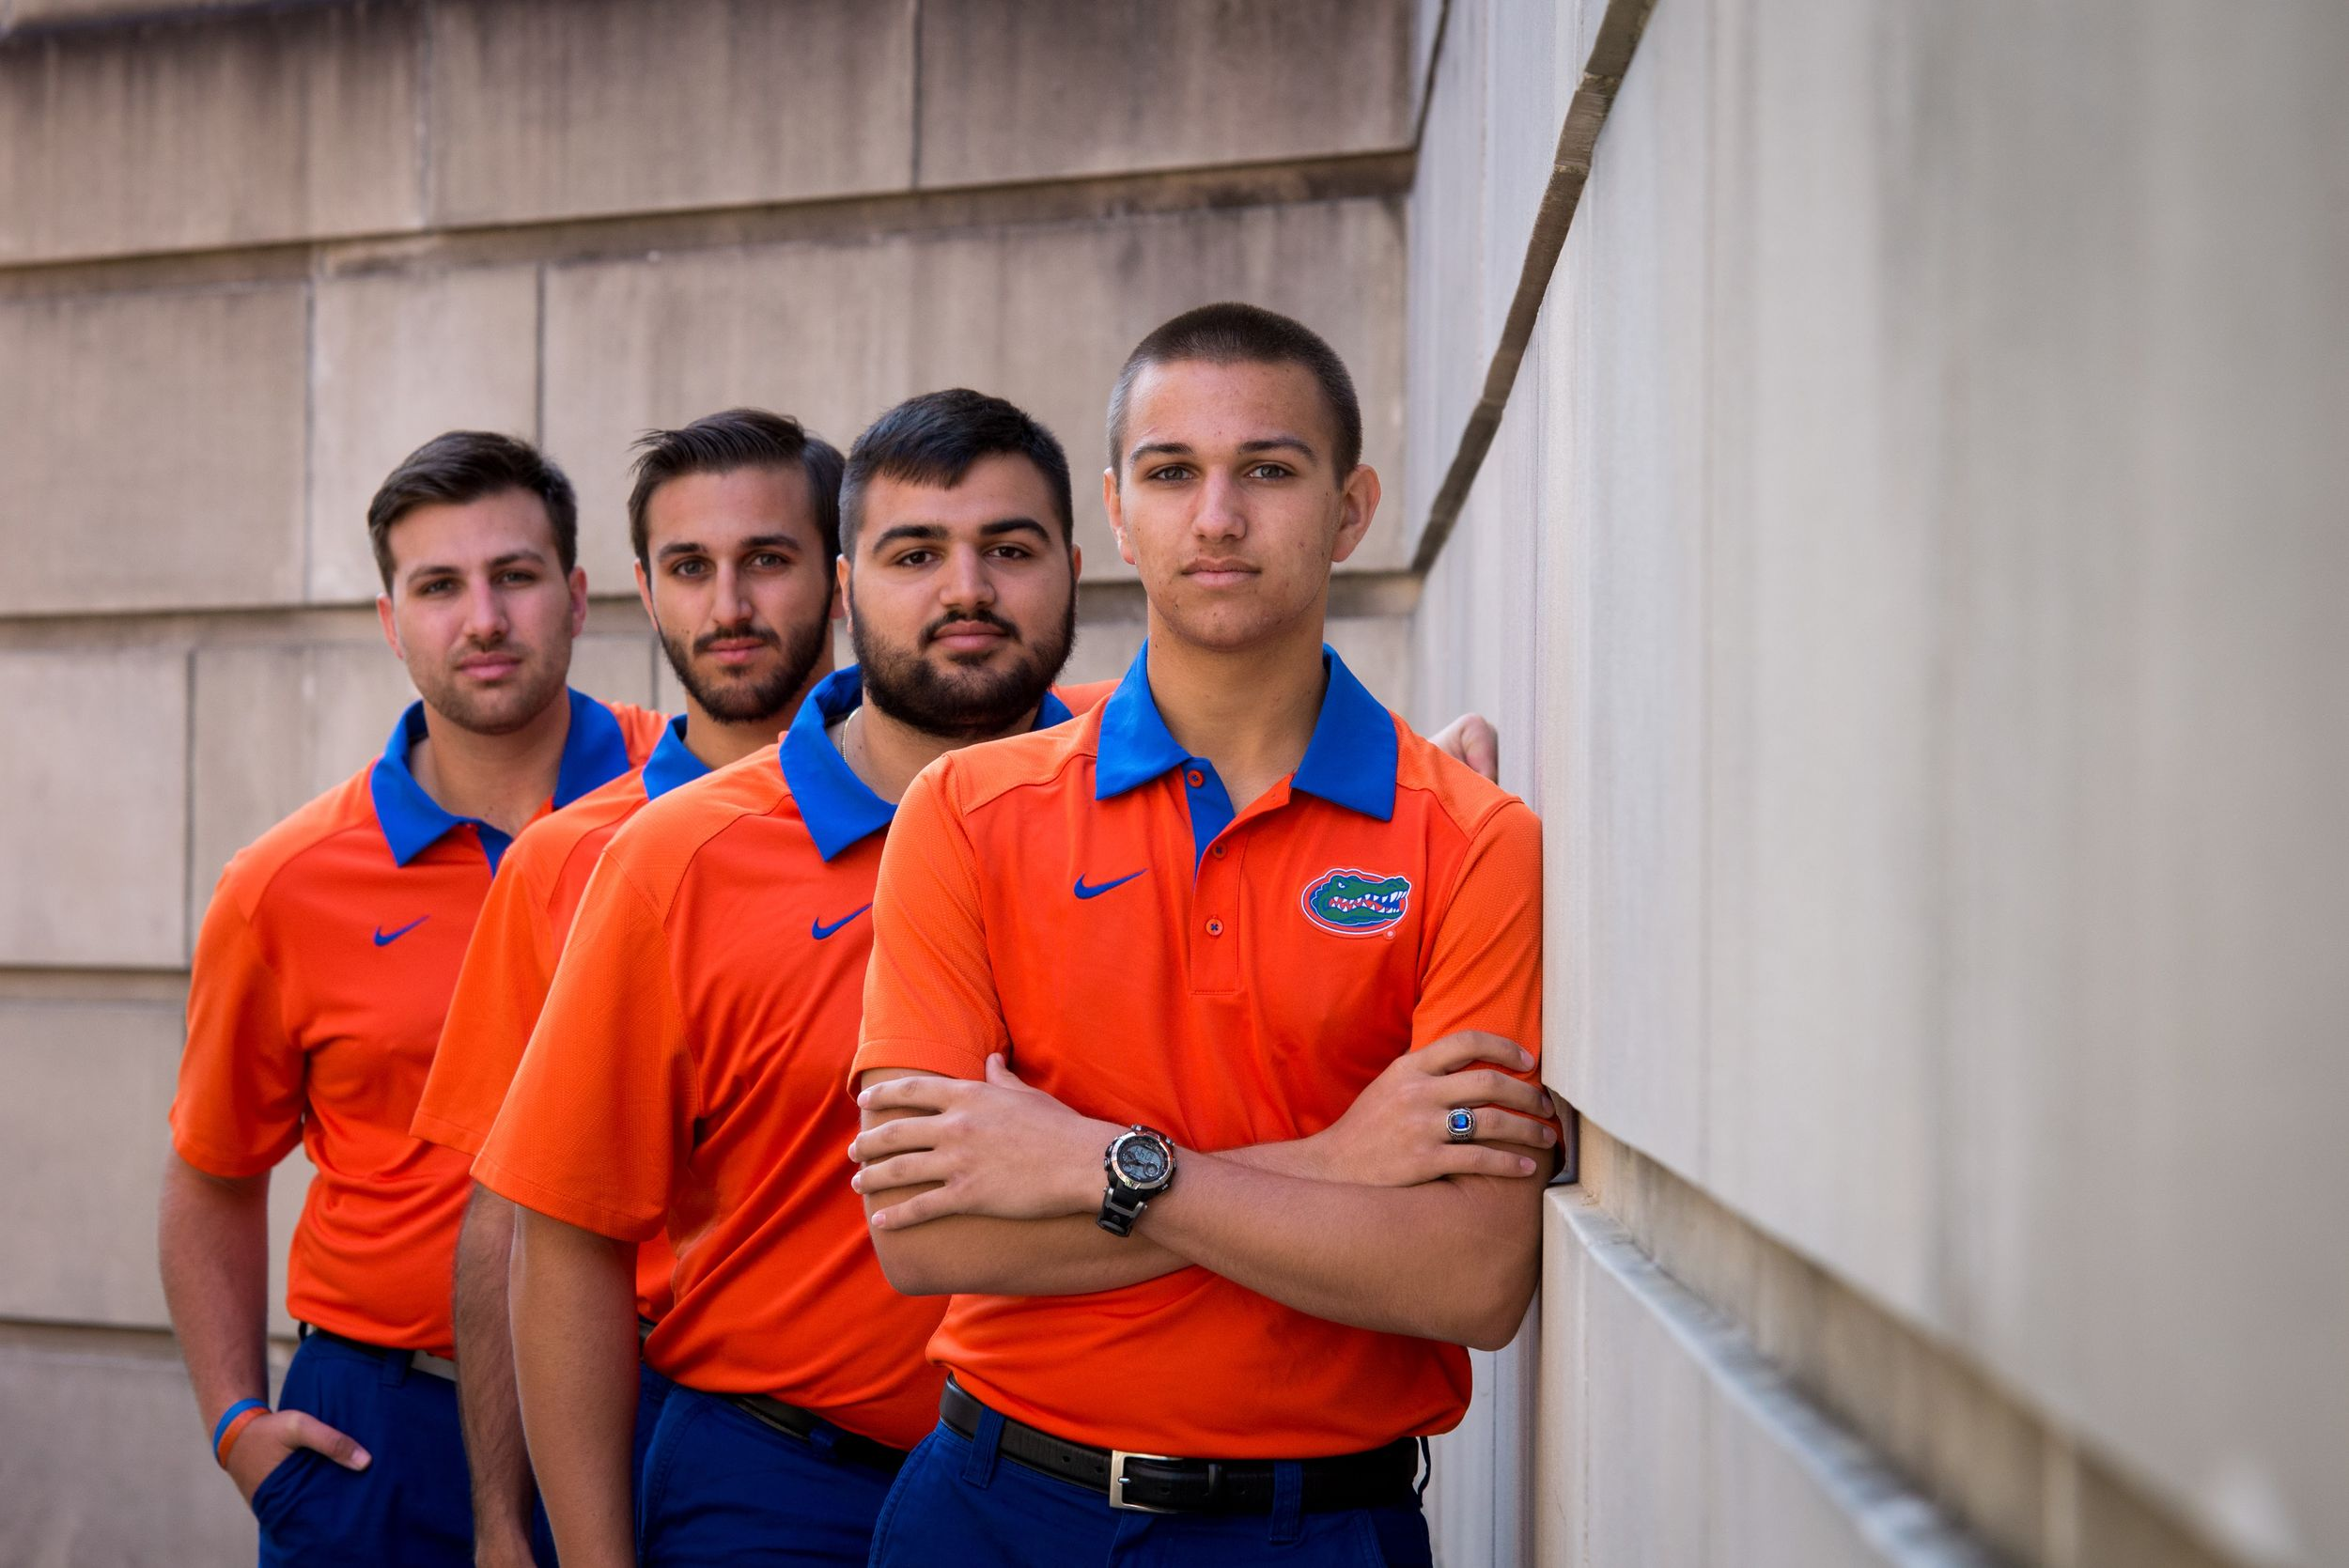 Four brothers dress in orange and blue pose for a portrait at the University of Florida in Gainesville, Fl.